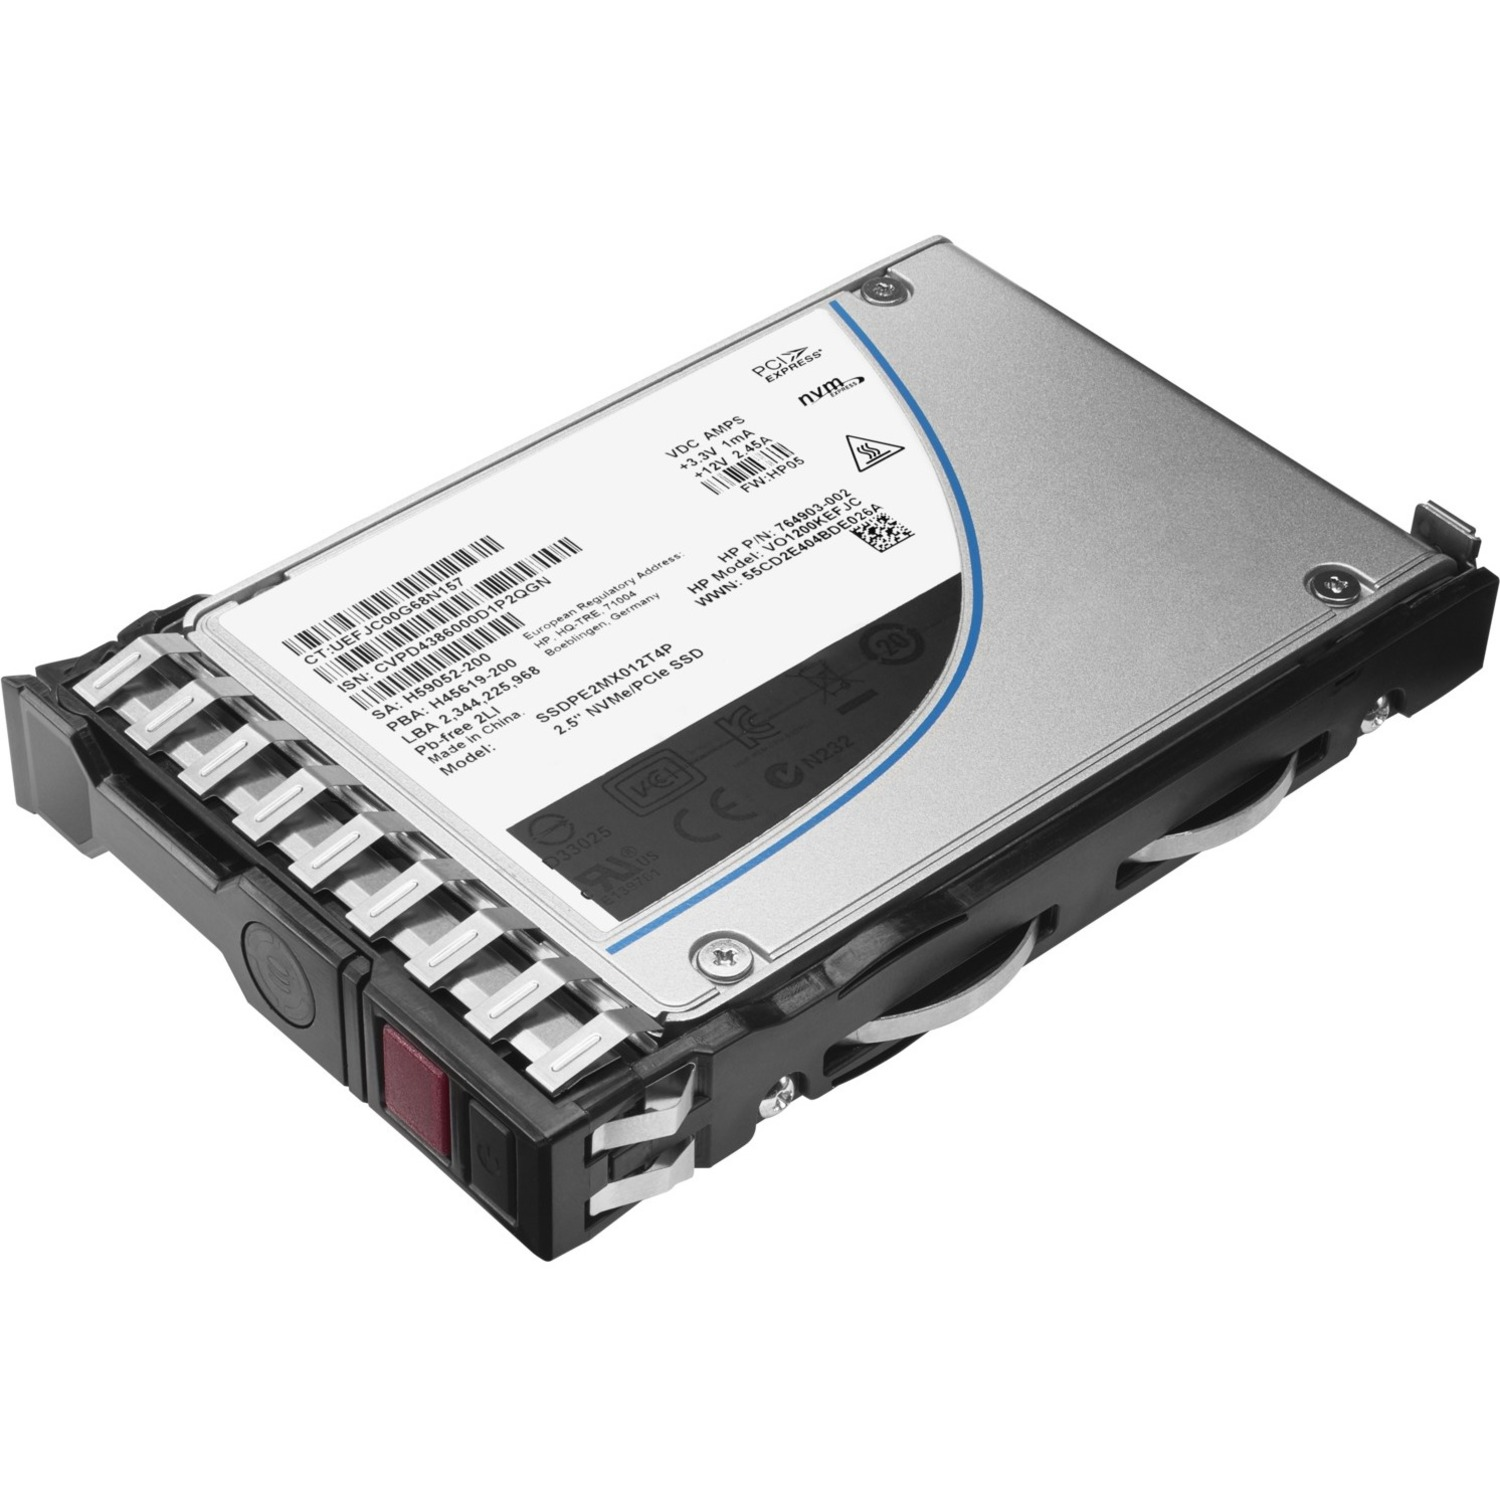 HP 960 GB 2.5inch Internal Solid State Drive - SATA - Hot Pluggable